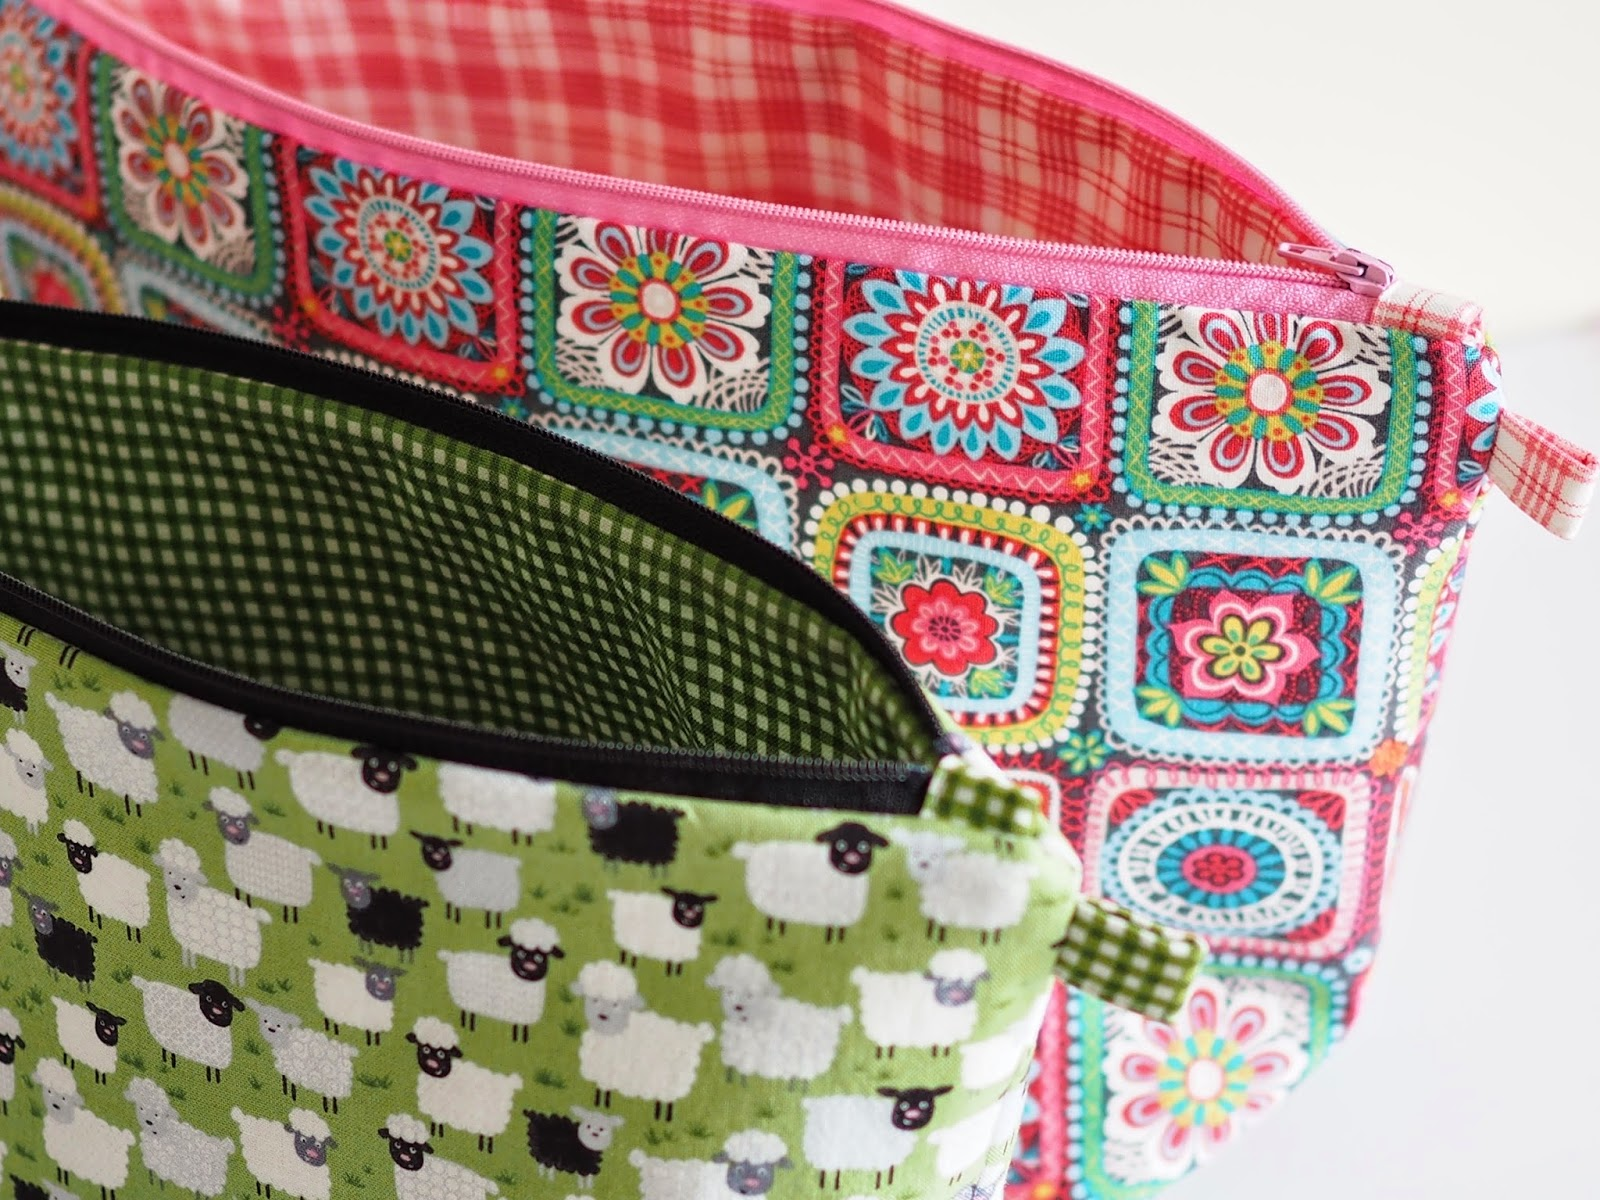 Knitting Project Bag Sewing Pattern : Betsy Makes ....: Project Bag Tutorial